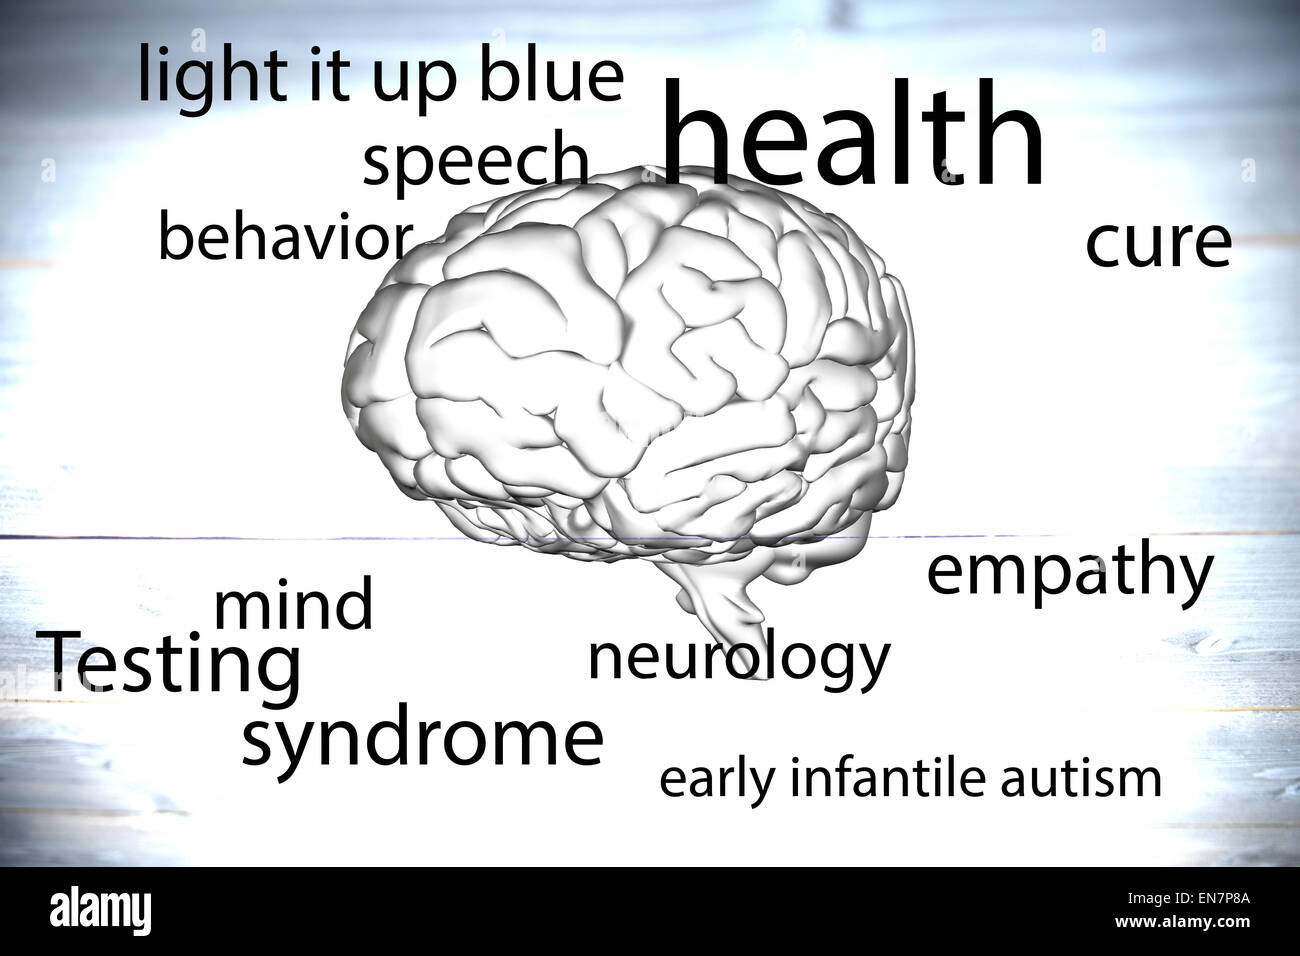 Early Infantile Autism Stock Photos Early Infantile Autism